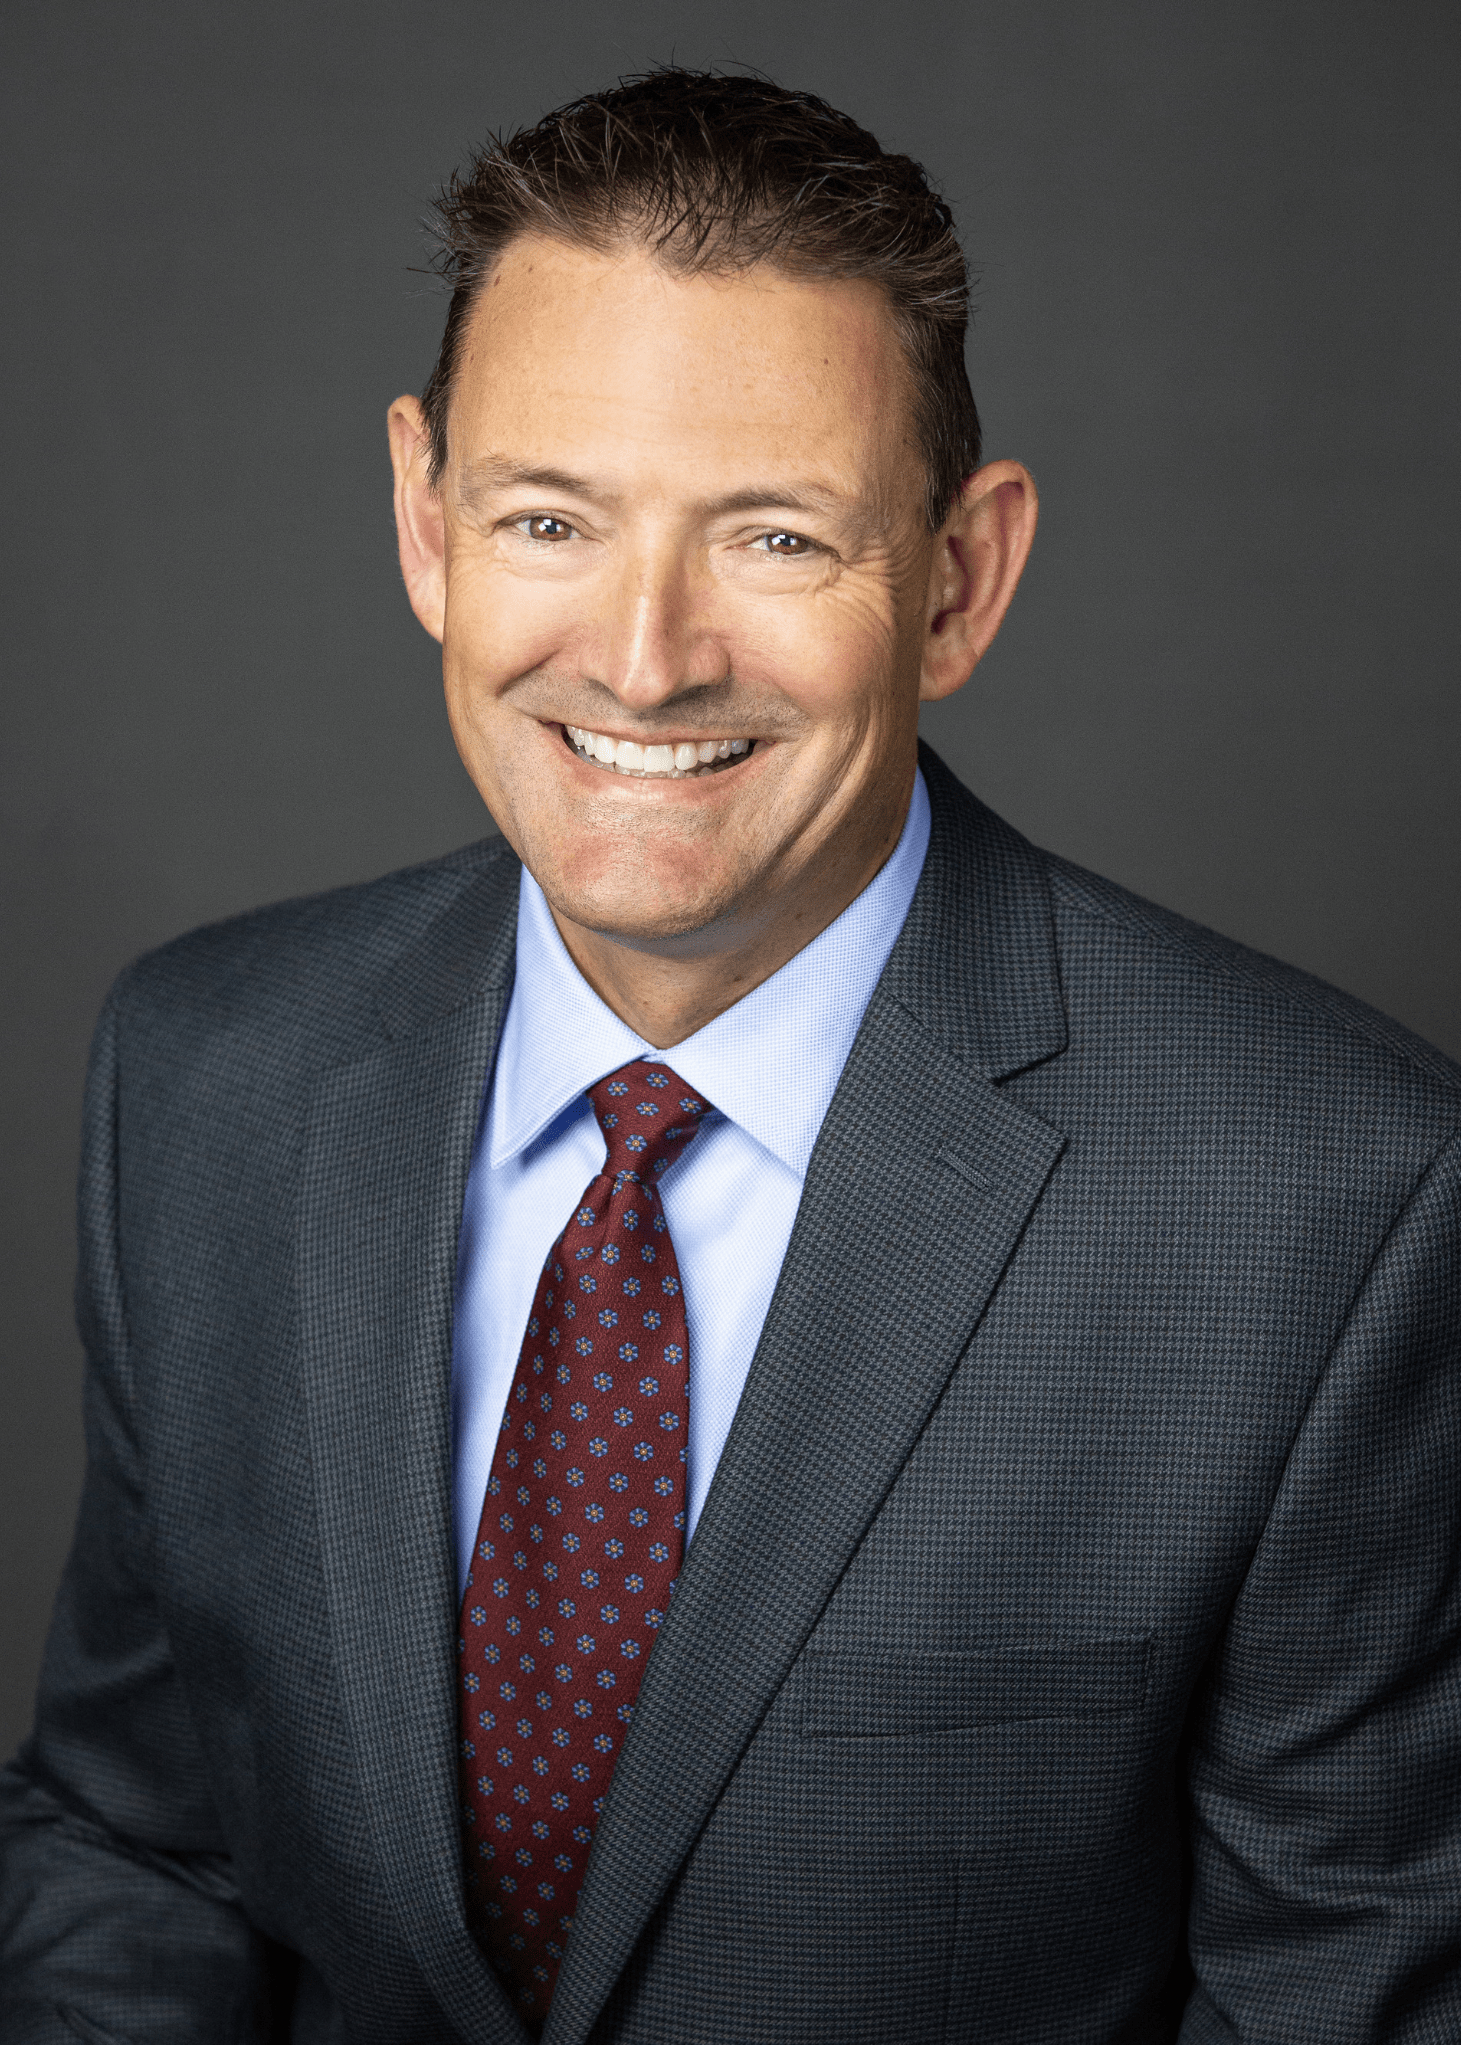 eric Mitten, Owner, Windermere Real estate, Trusted agent, real estate, Whidbey Island, Washington, Oak Harbor, house hunting, Island life, buy, sell, invest